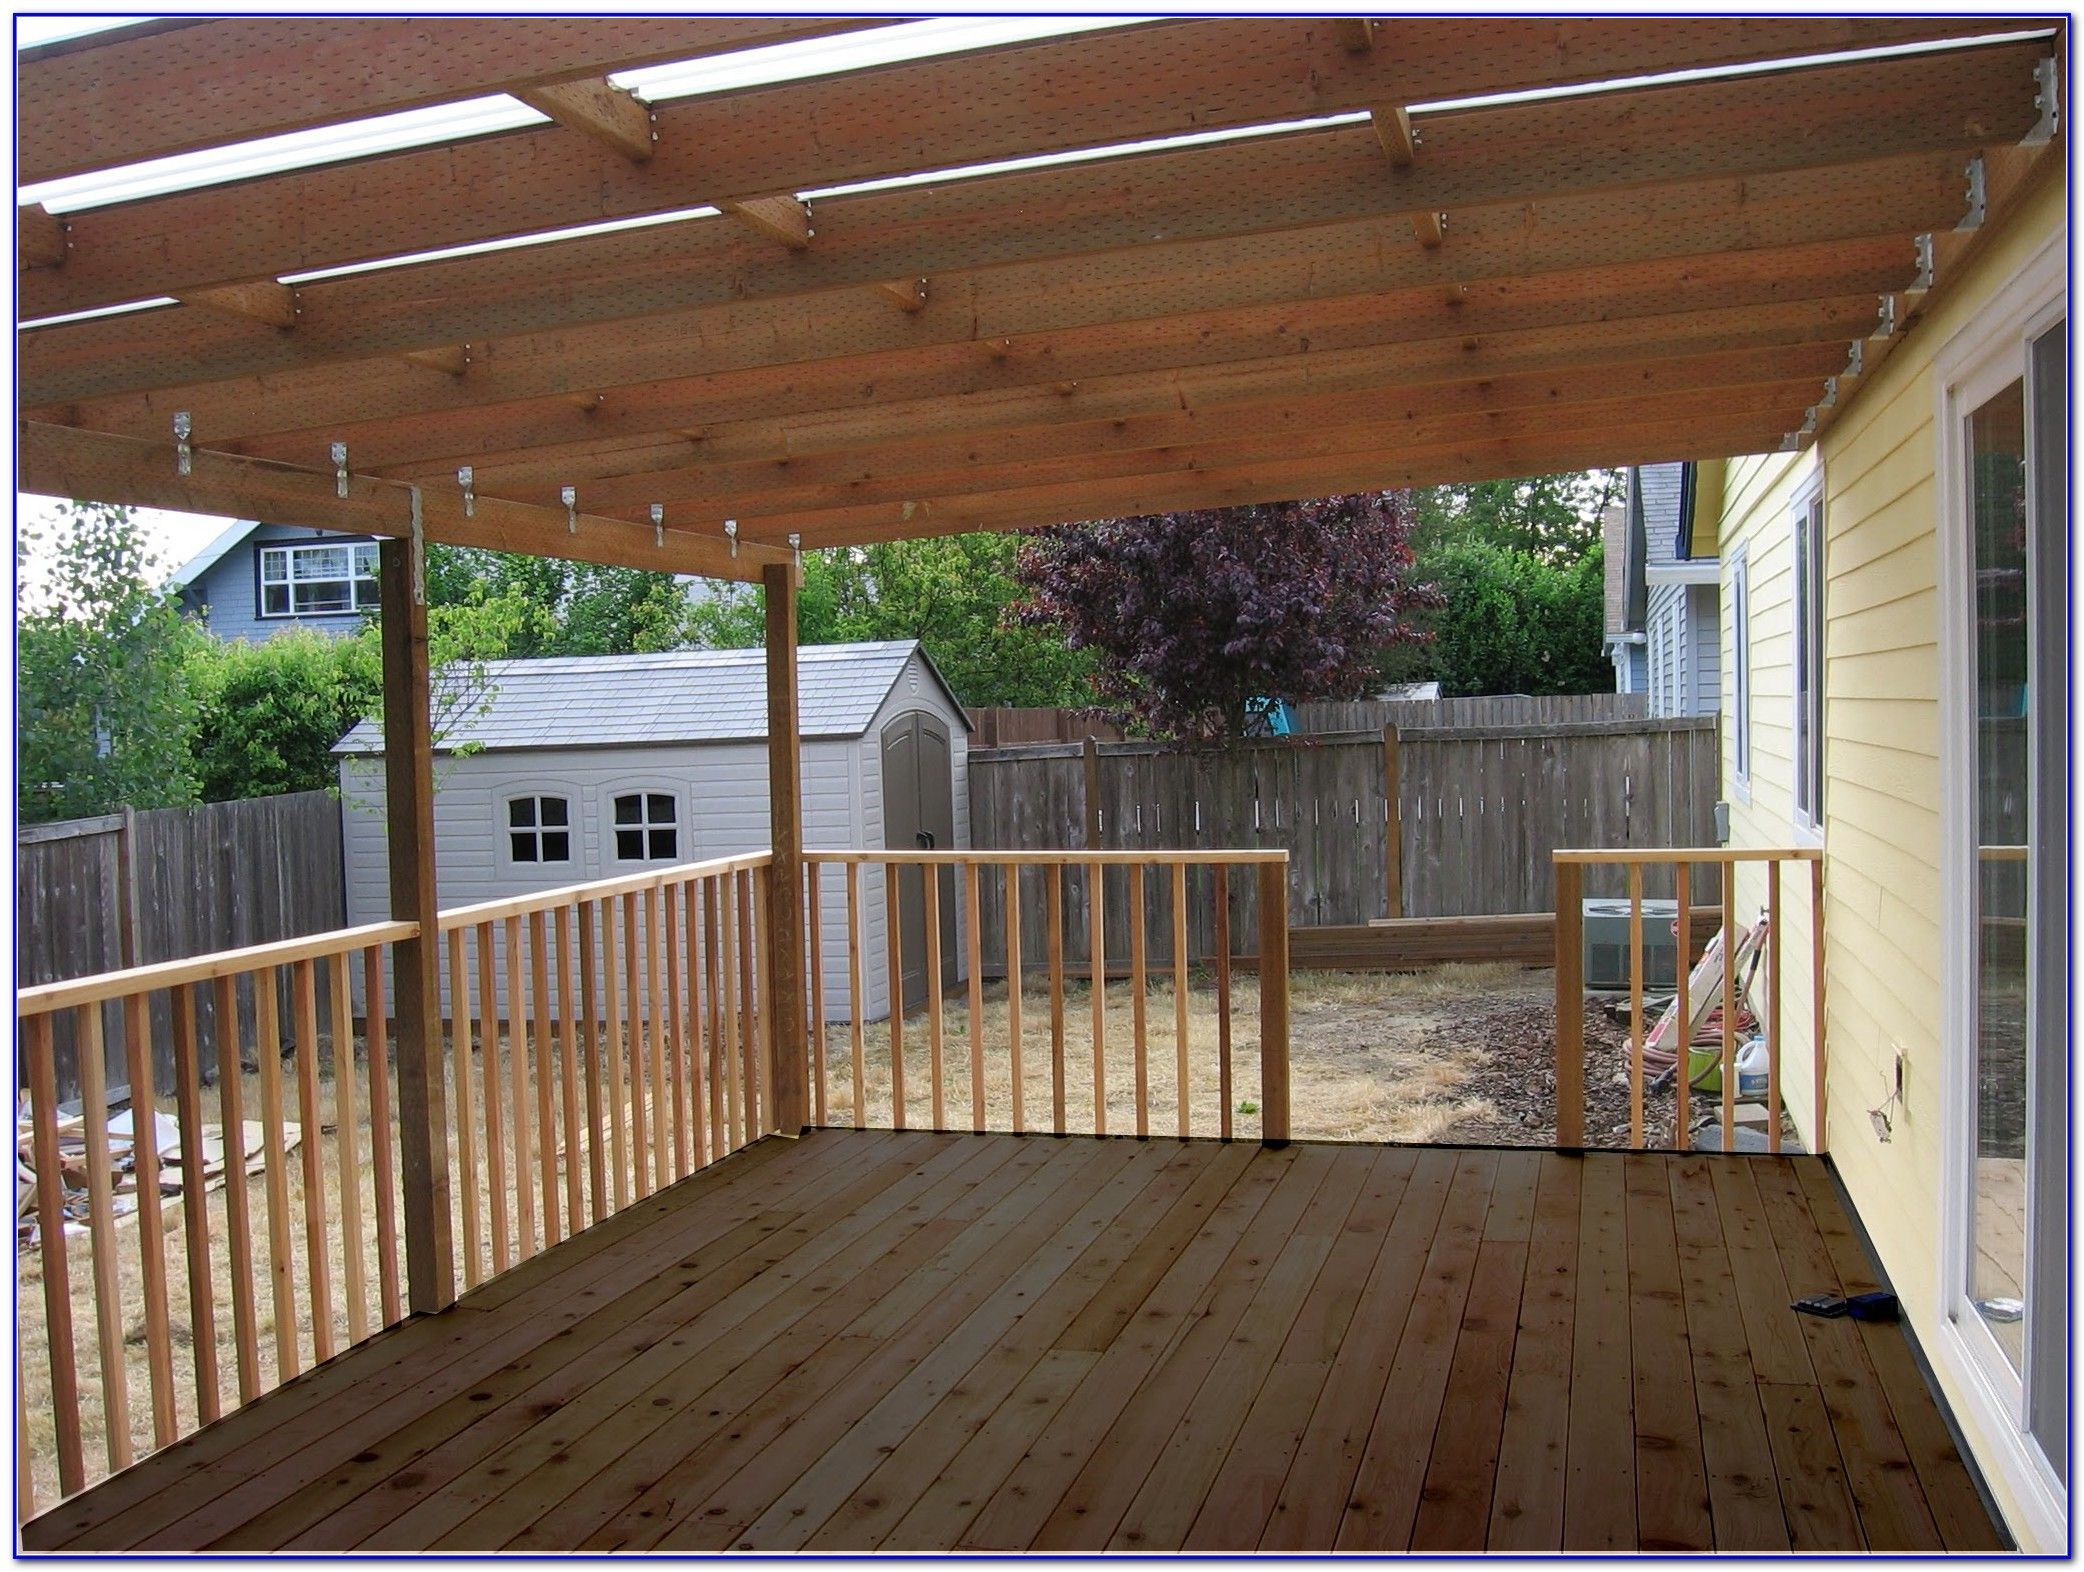 Covered Deck Designs Pictures Covered Deck Pictures Covered Deck Rh  Pinterest Com